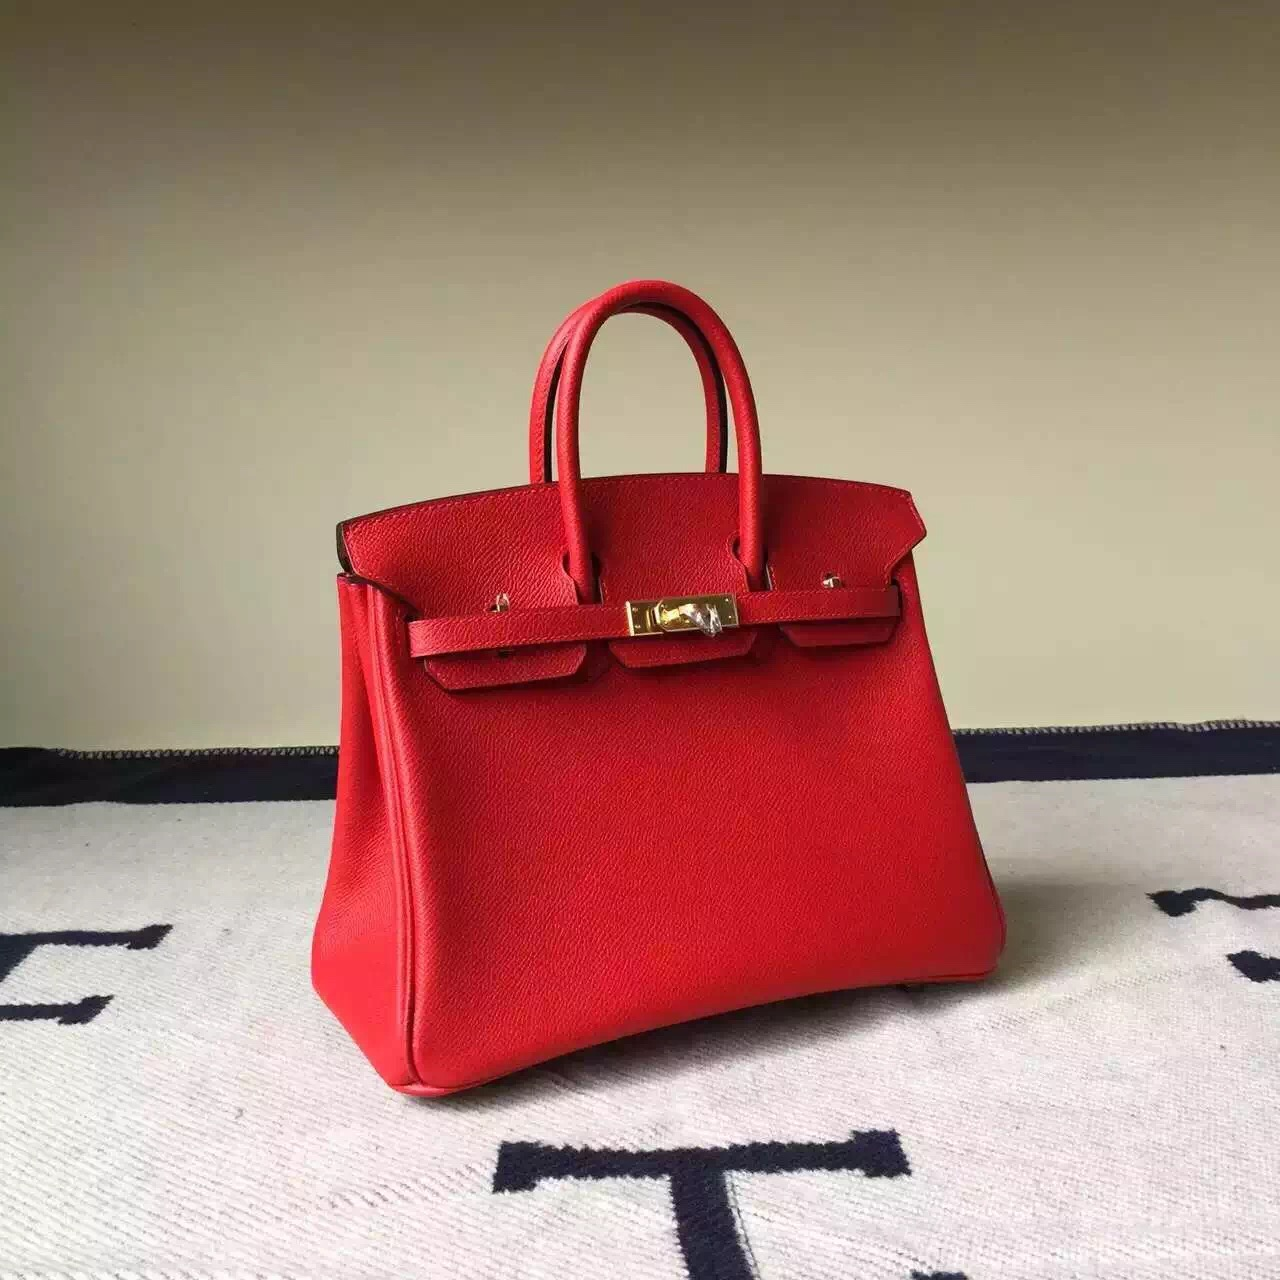 New Pretty Hermes Q5 Rouge Casaque Epsom Leather Birkin25cm Bag